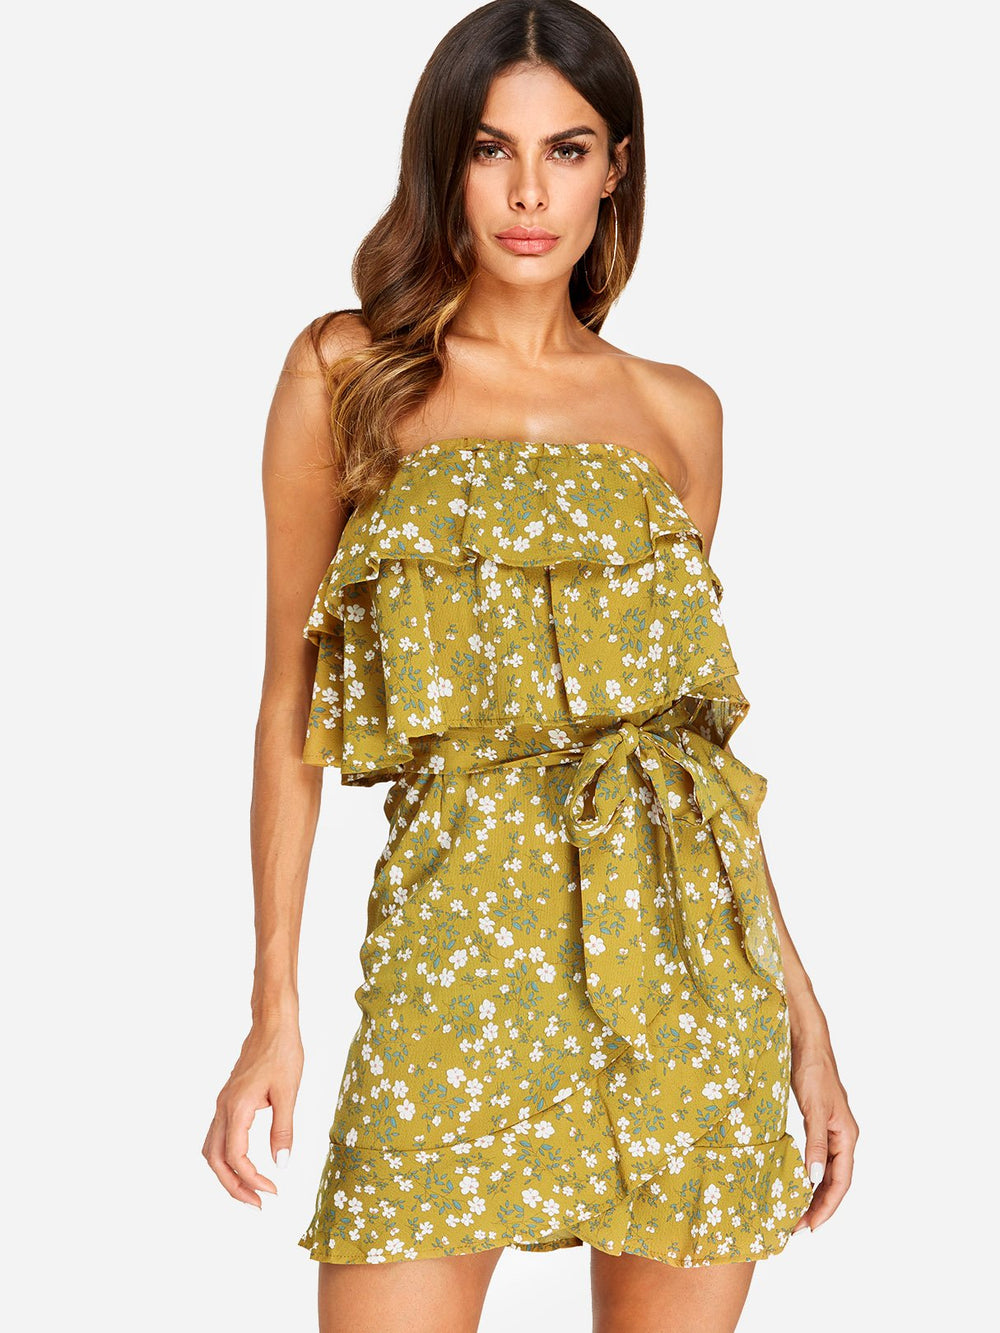 Yellow Strapless Sleeveless Floral Print Tiered Self-Tie Flounced Hem Mini Dresses